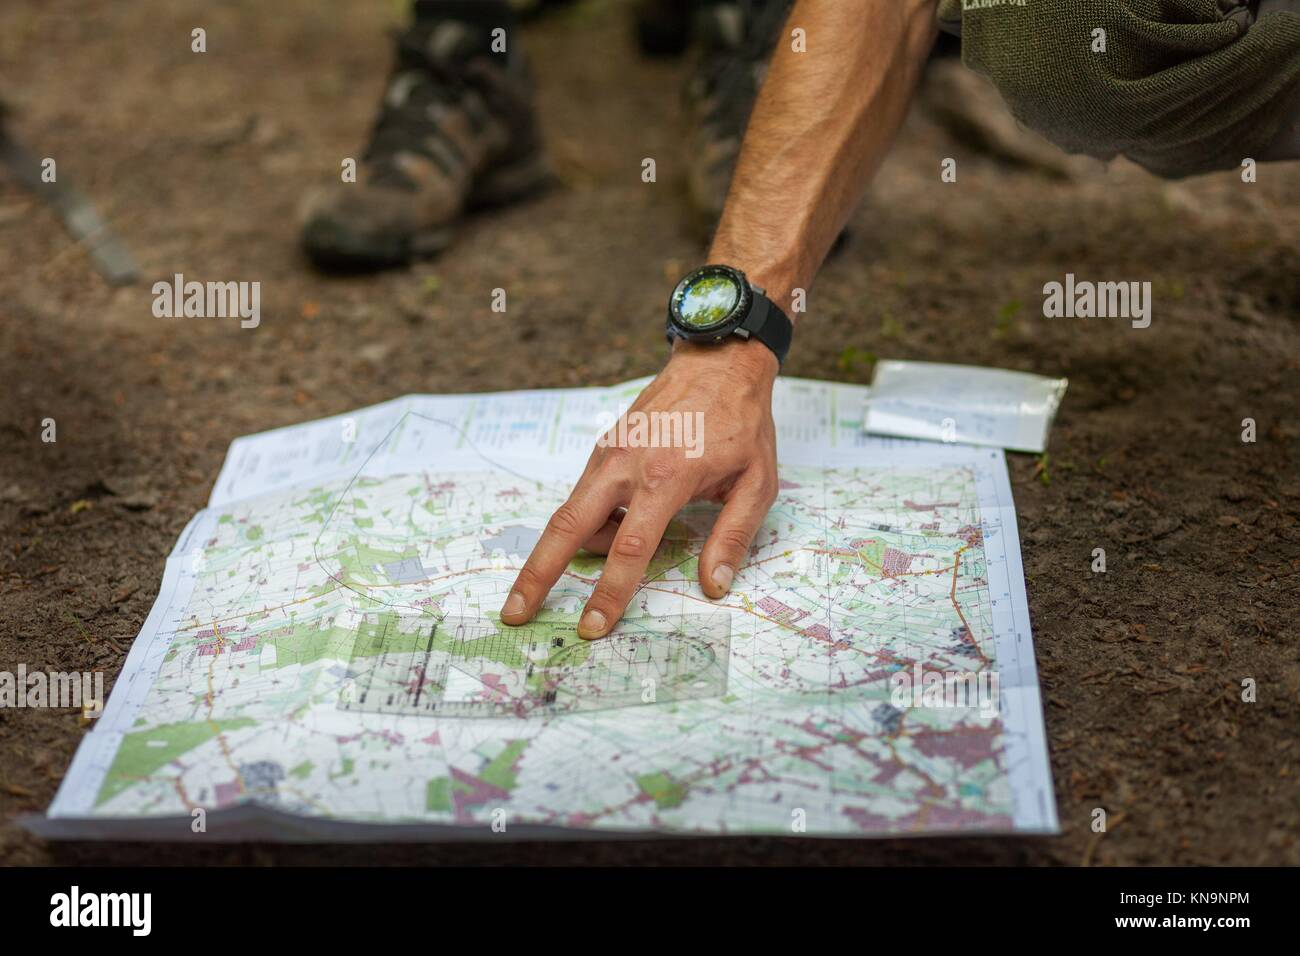 A group of hikers uses map and compass to navigate through the forest. - Stock Image